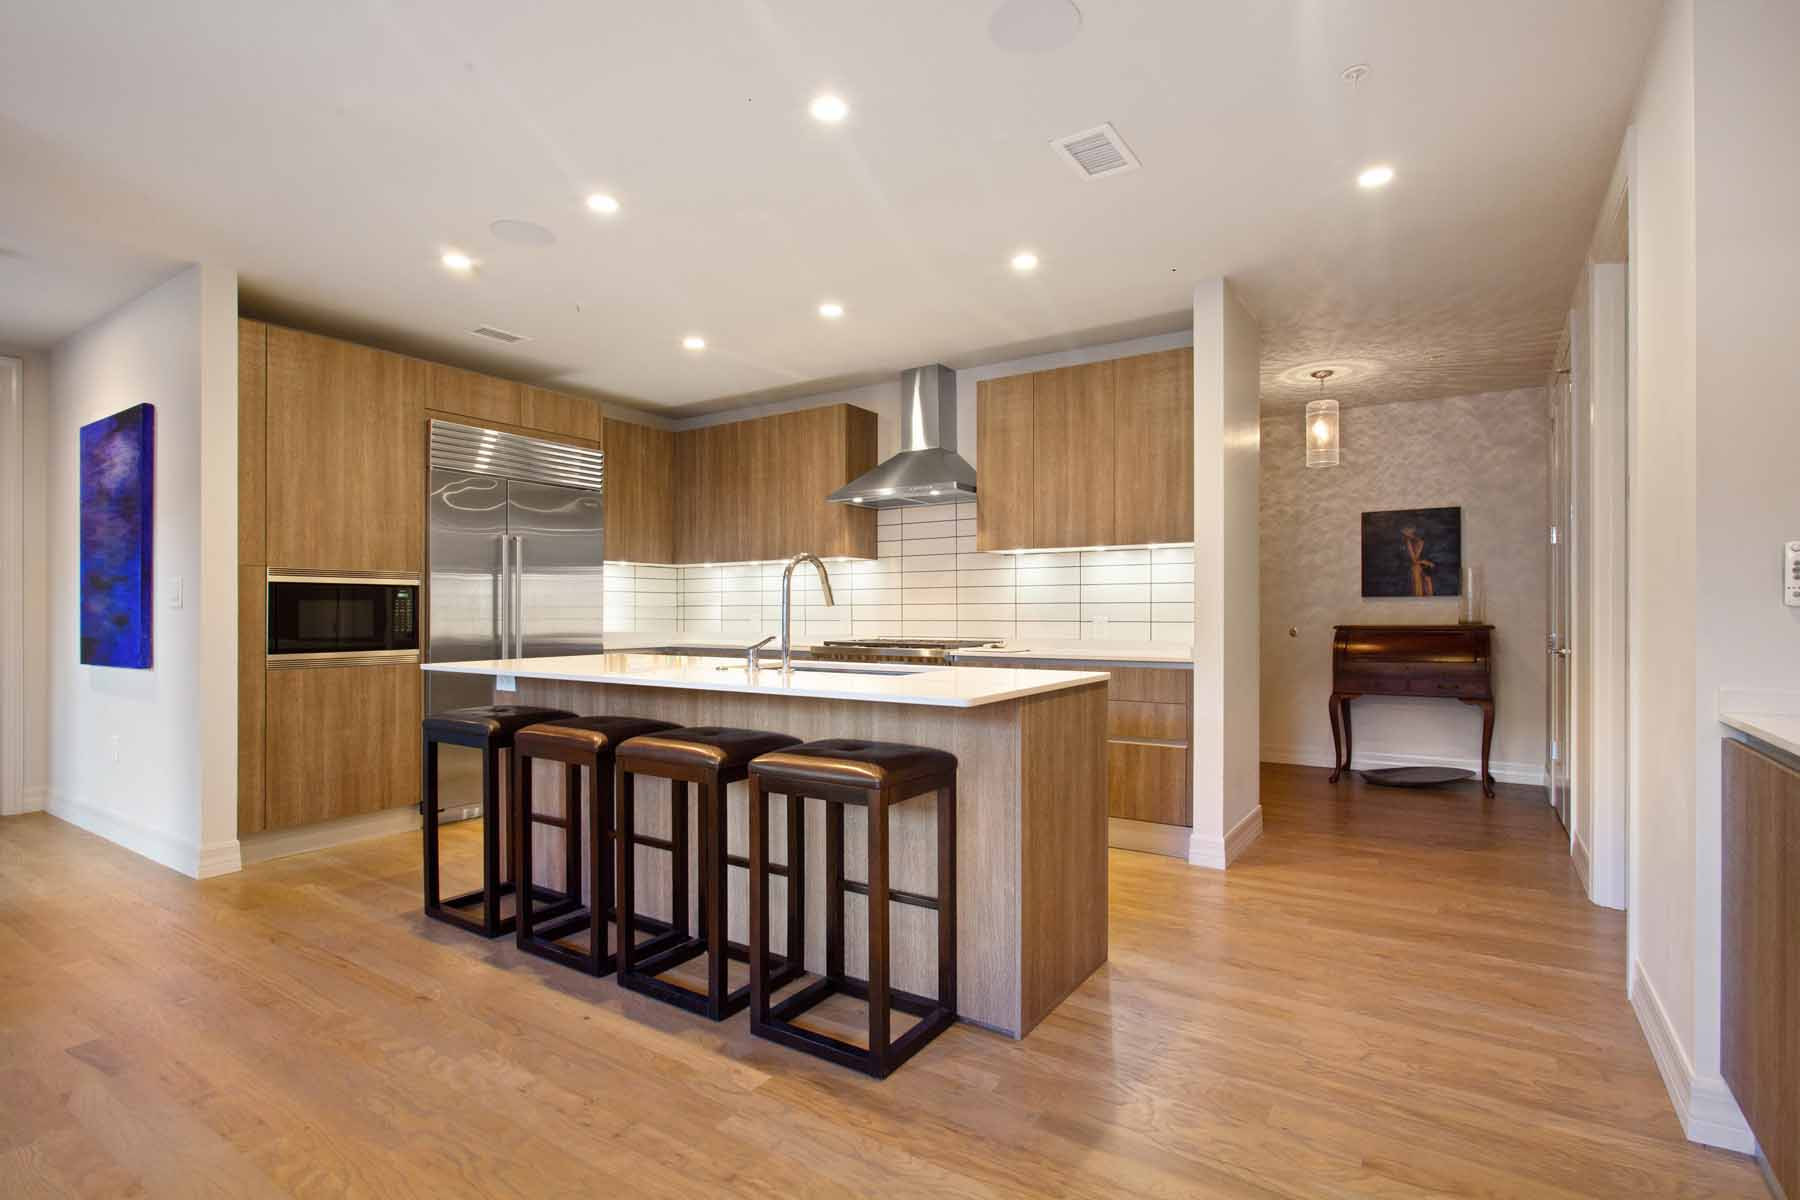 Additional photo for property listing at Absolutely Stunning Corner Residence In Desirable Seventh Midtown 867 Peachtree Street NE #203 Atlanta, Georgia 30308 United States